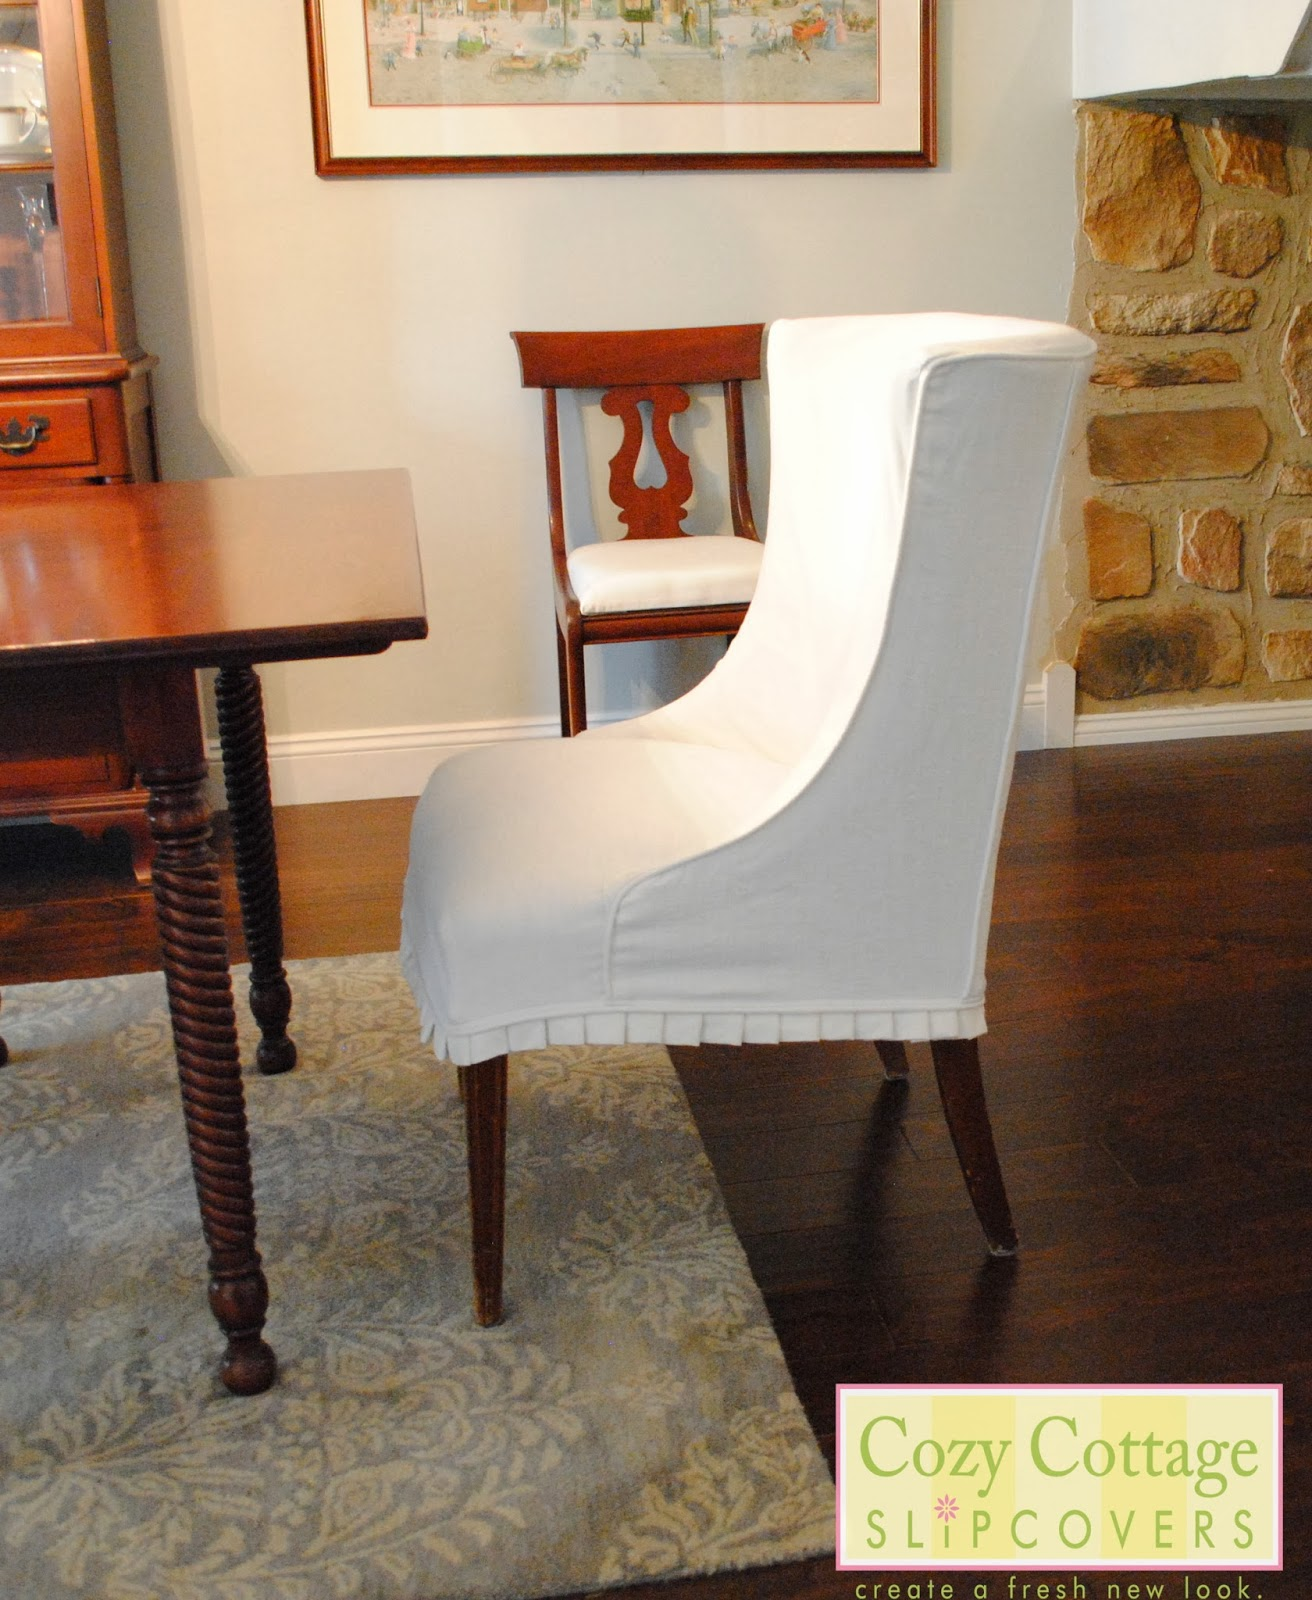 Sofa In Dining Room: Cozy Cottage Slipcovers: White Slipcovers In The Dining Room